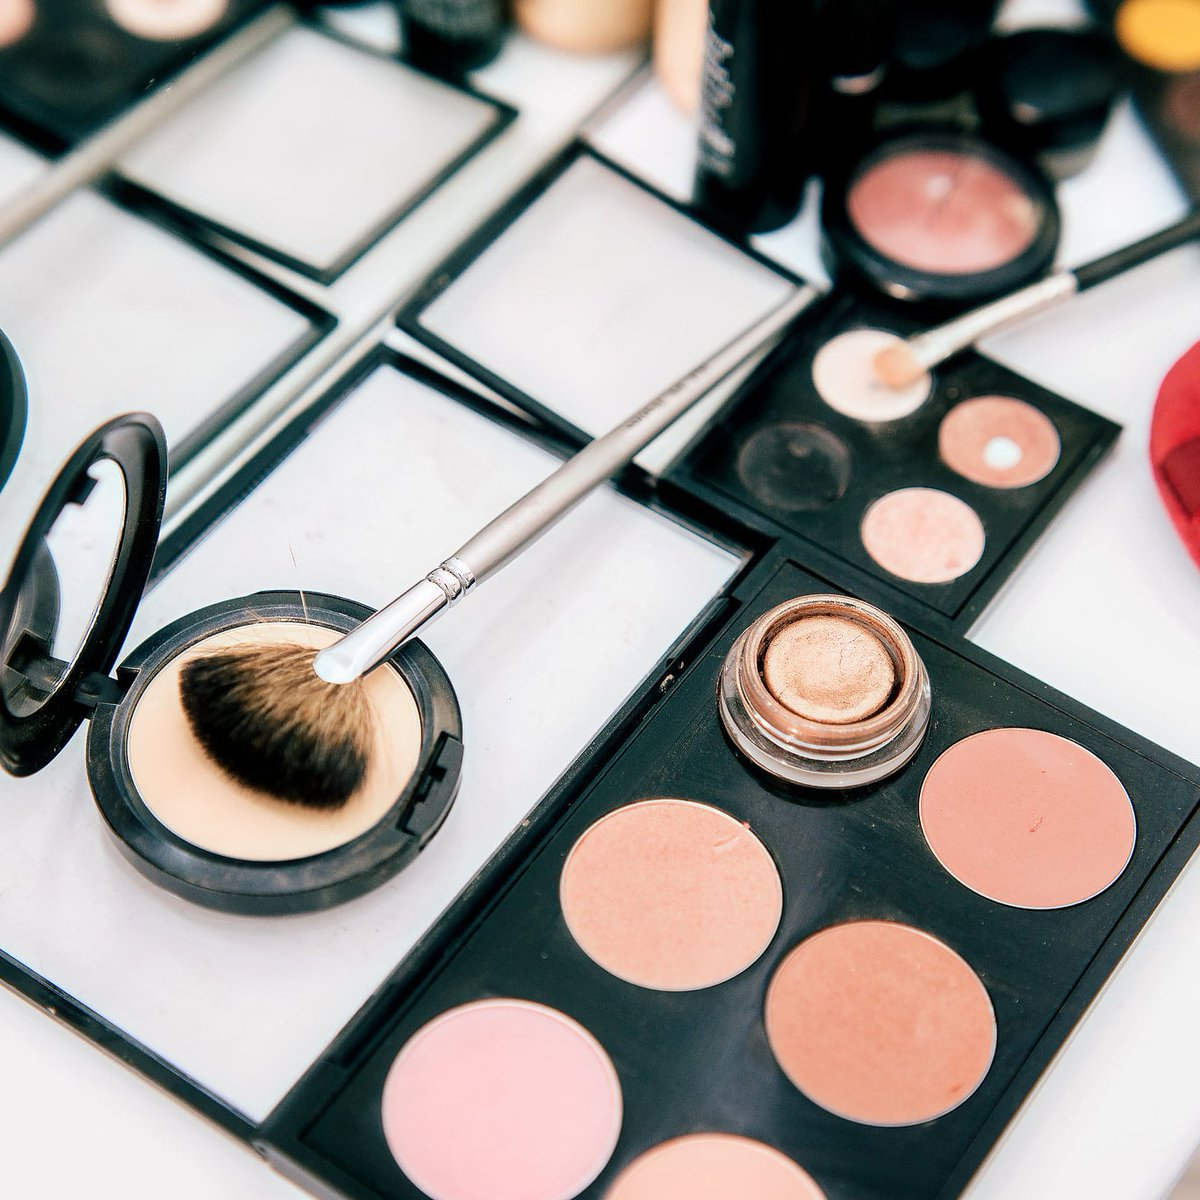 Makeup course visit our website and see link in the bio. #instagram #instagood #love #like #follow #photography #photooftheday #instadaily #likeforlikes #picoftheday #fashion #bhfyp #beautiful #instalike #me #likes #followforfollowback #smile #followme #myself #art #photo #happy